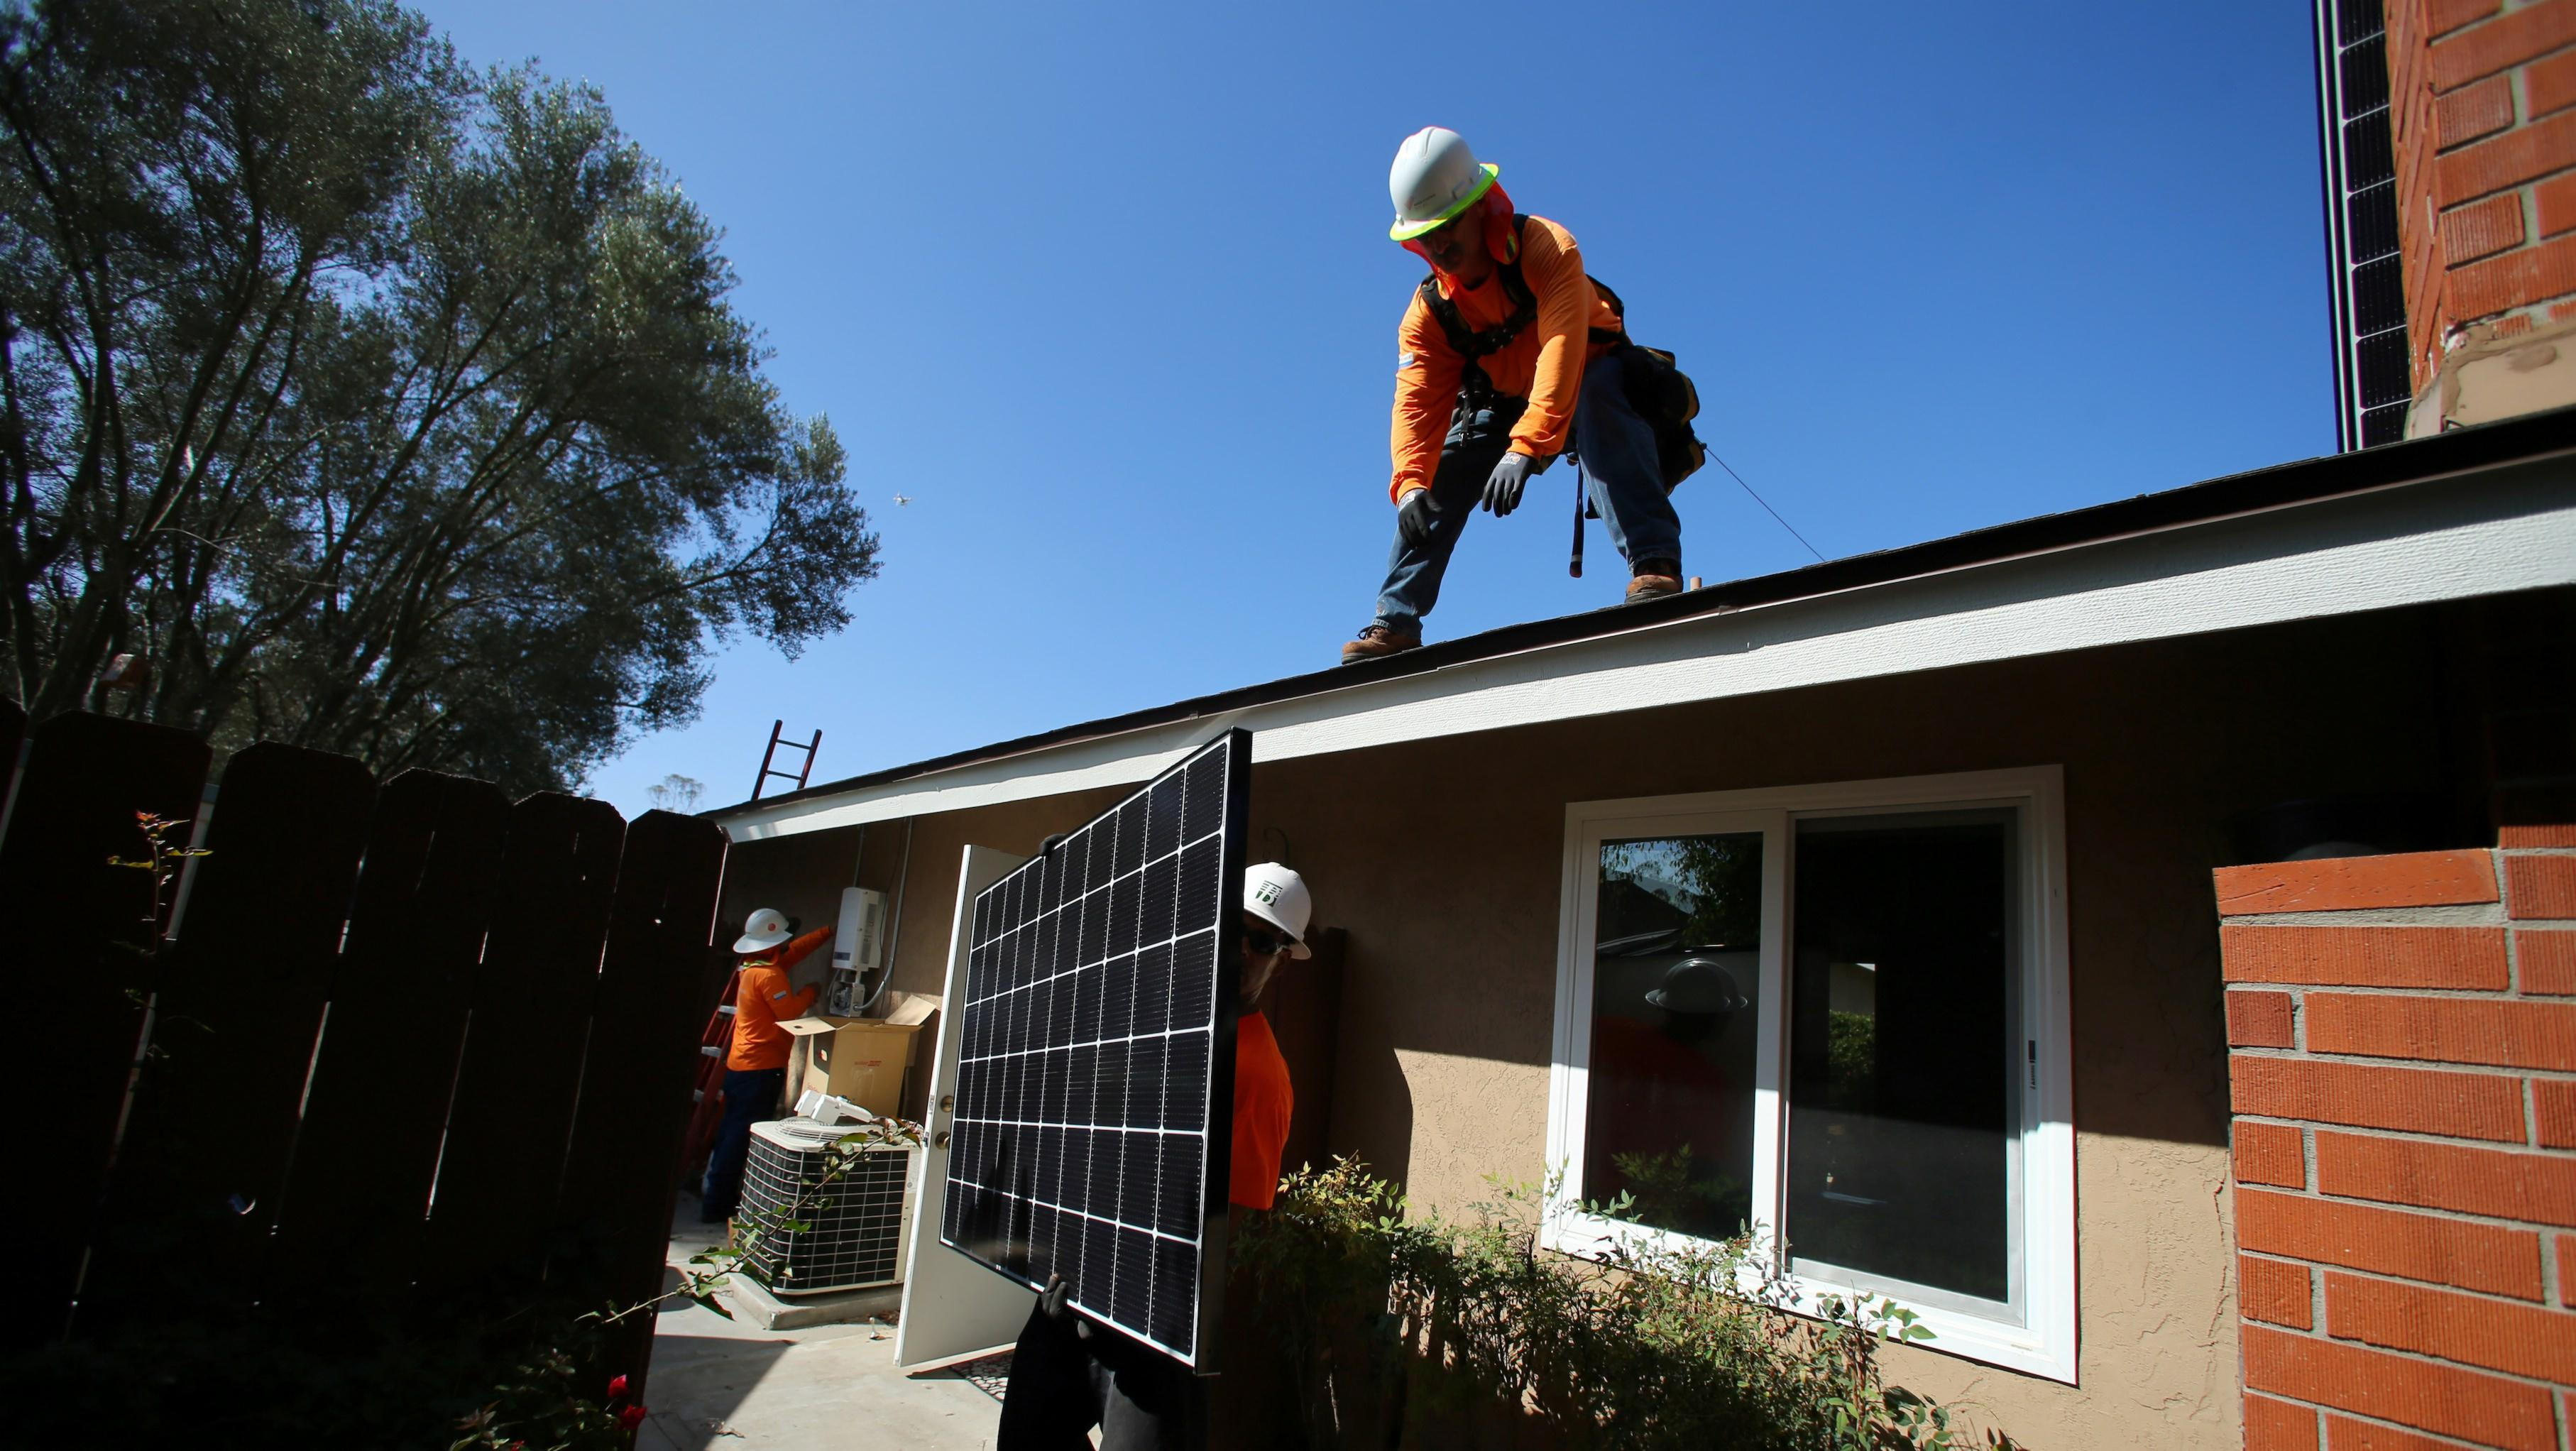 A worker hands a solar panel to another worker on top of a roof.